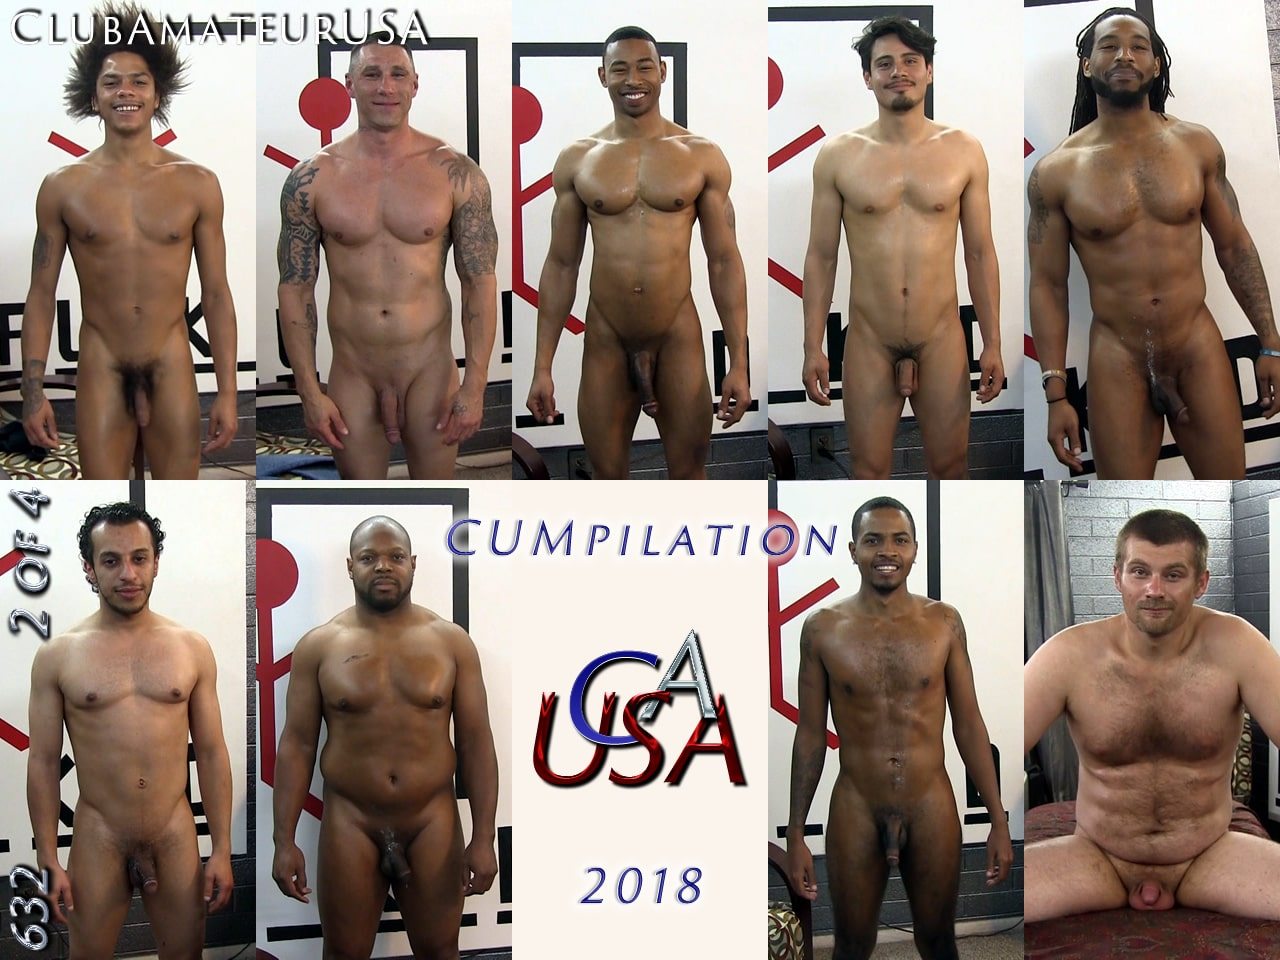 Download or Stream CUMpilation 2018 - 2 of 4 - Click Here Now